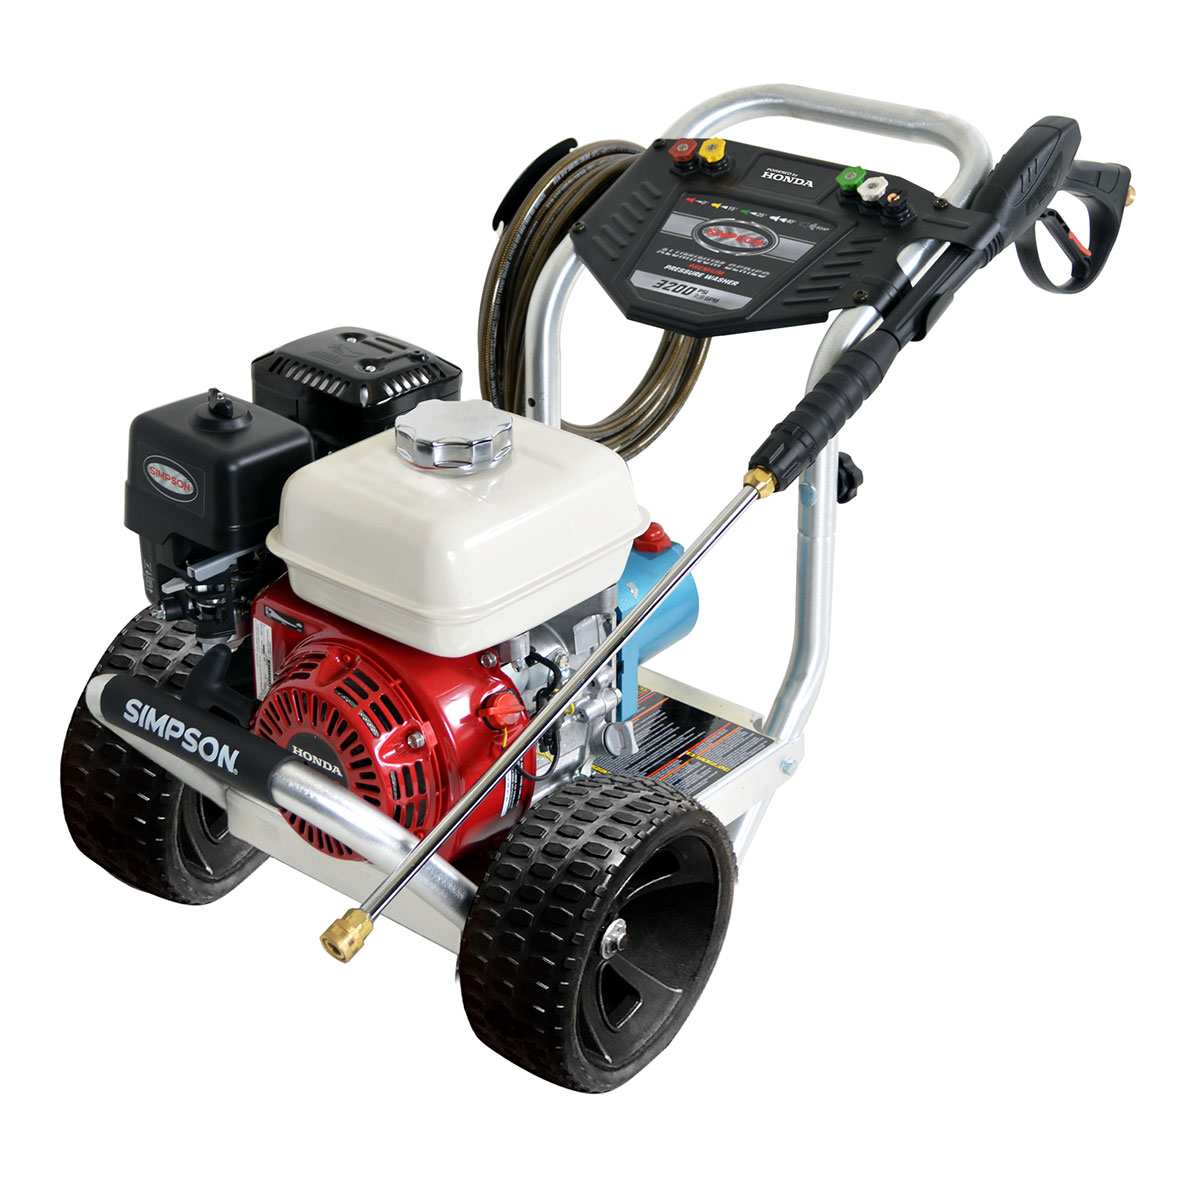 3200 PSI Aluminum Series - Commercial Direct Drive Pressure Washer with a Honda GX200 engine and a 25' hose - ALH3228-S